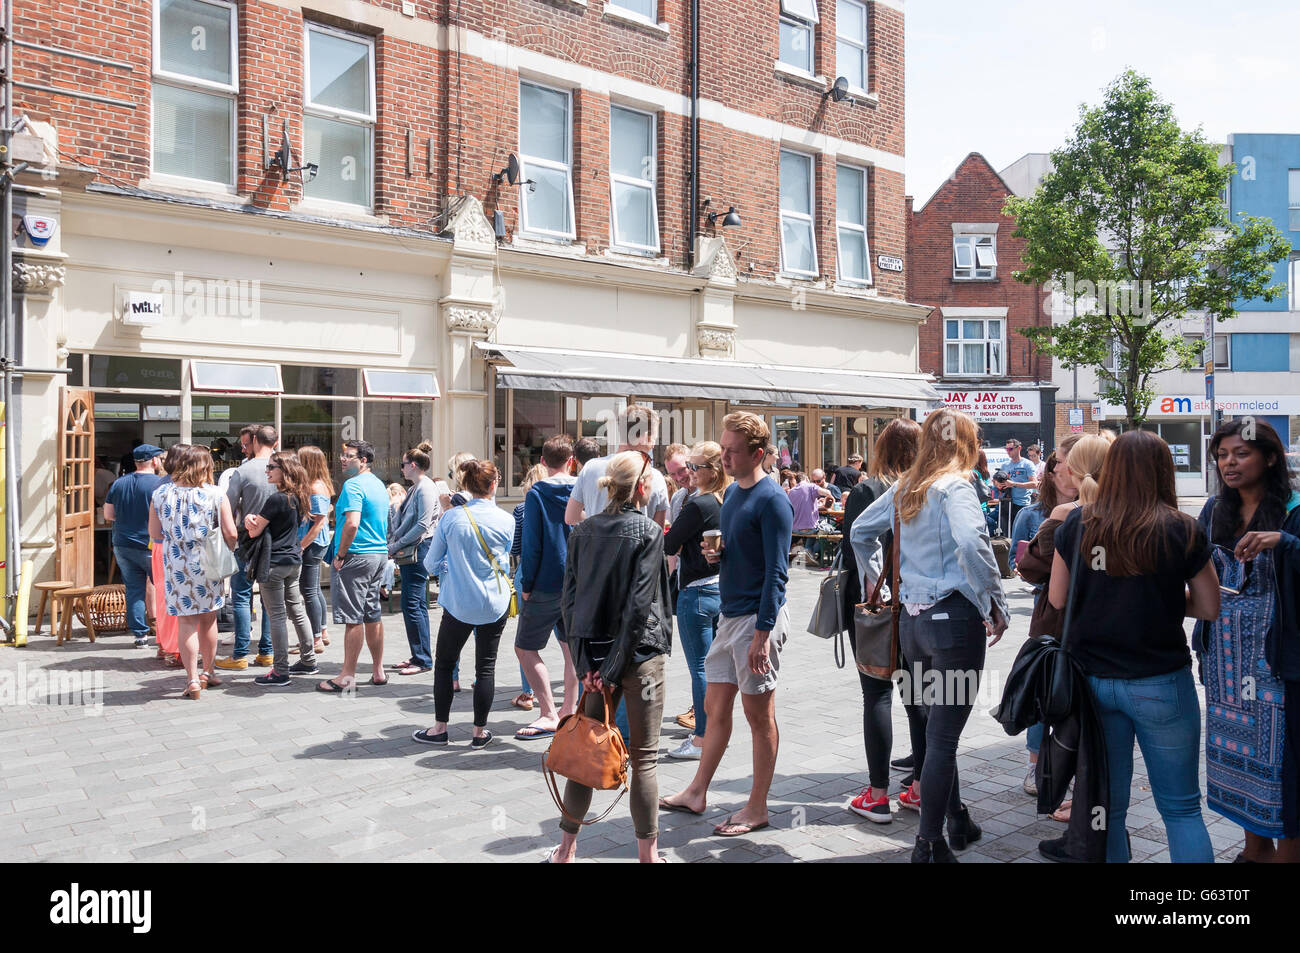 Lunchtime queue for Milk Cafe, Hildreth Street, Balham, London Borough of Wandsworth, Greater London, England, United - Stock Image